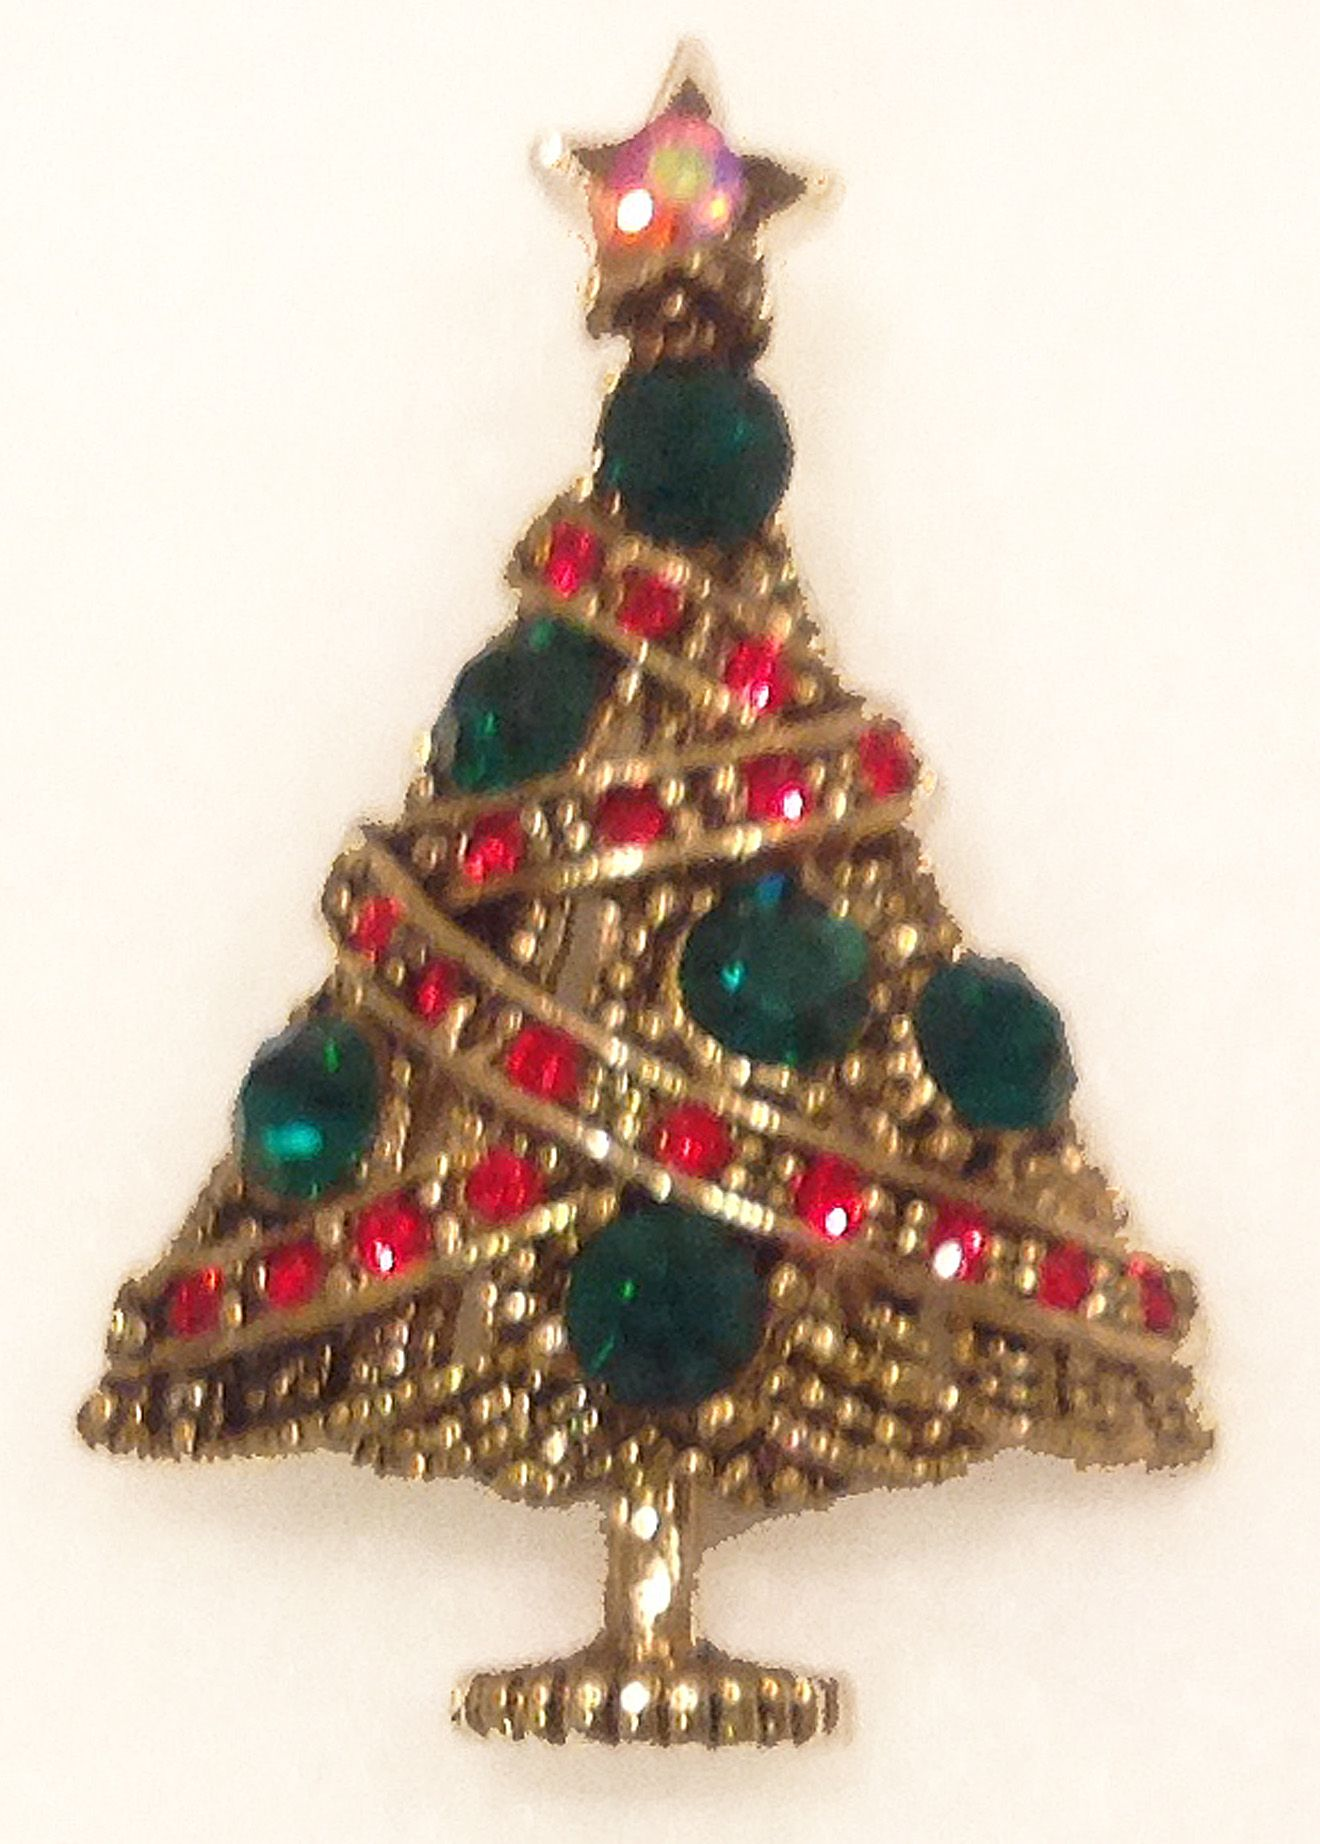 Contemporary Christmas Tree Pin Styled after Hollycraft Antique